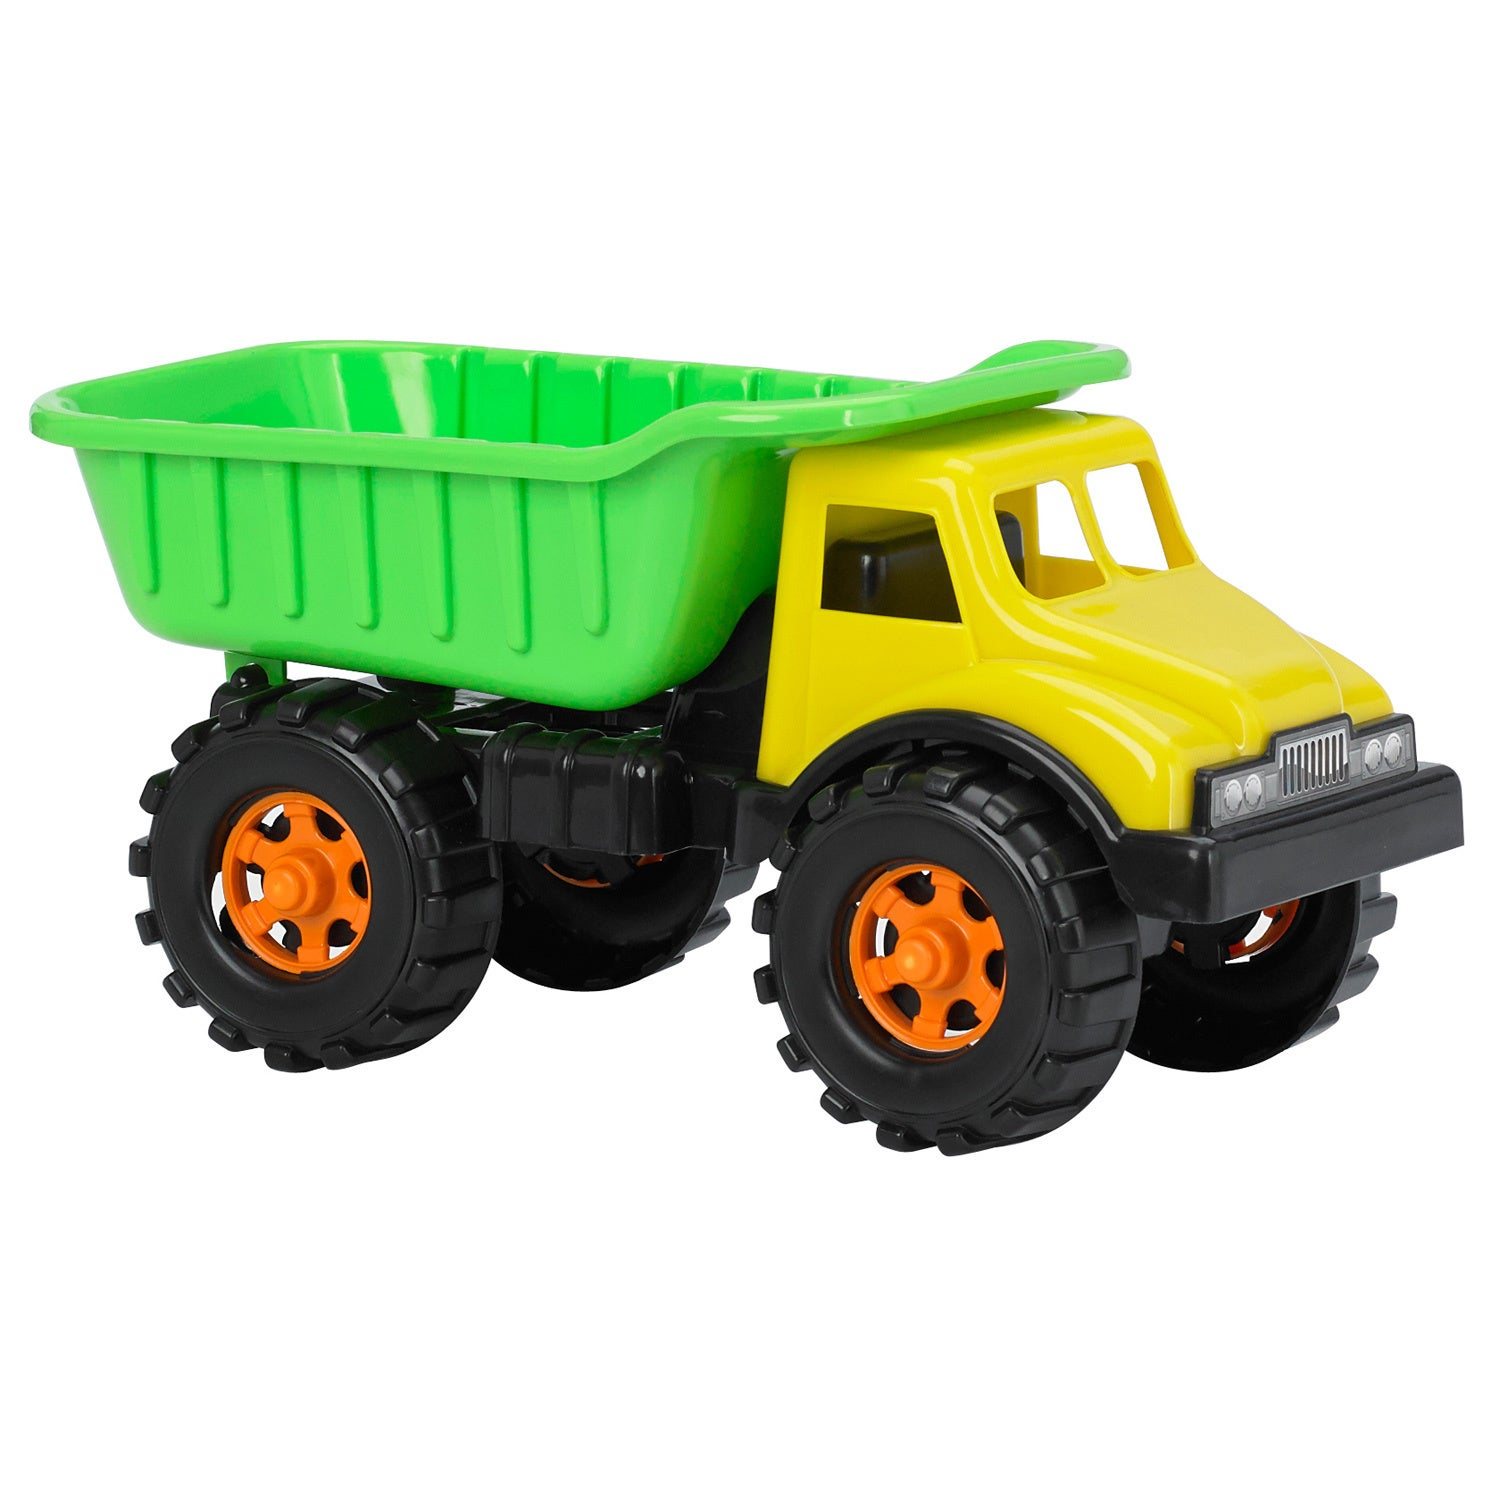 American Plastic Toys 16-inch Dump Truck Toy (case of 6) ...